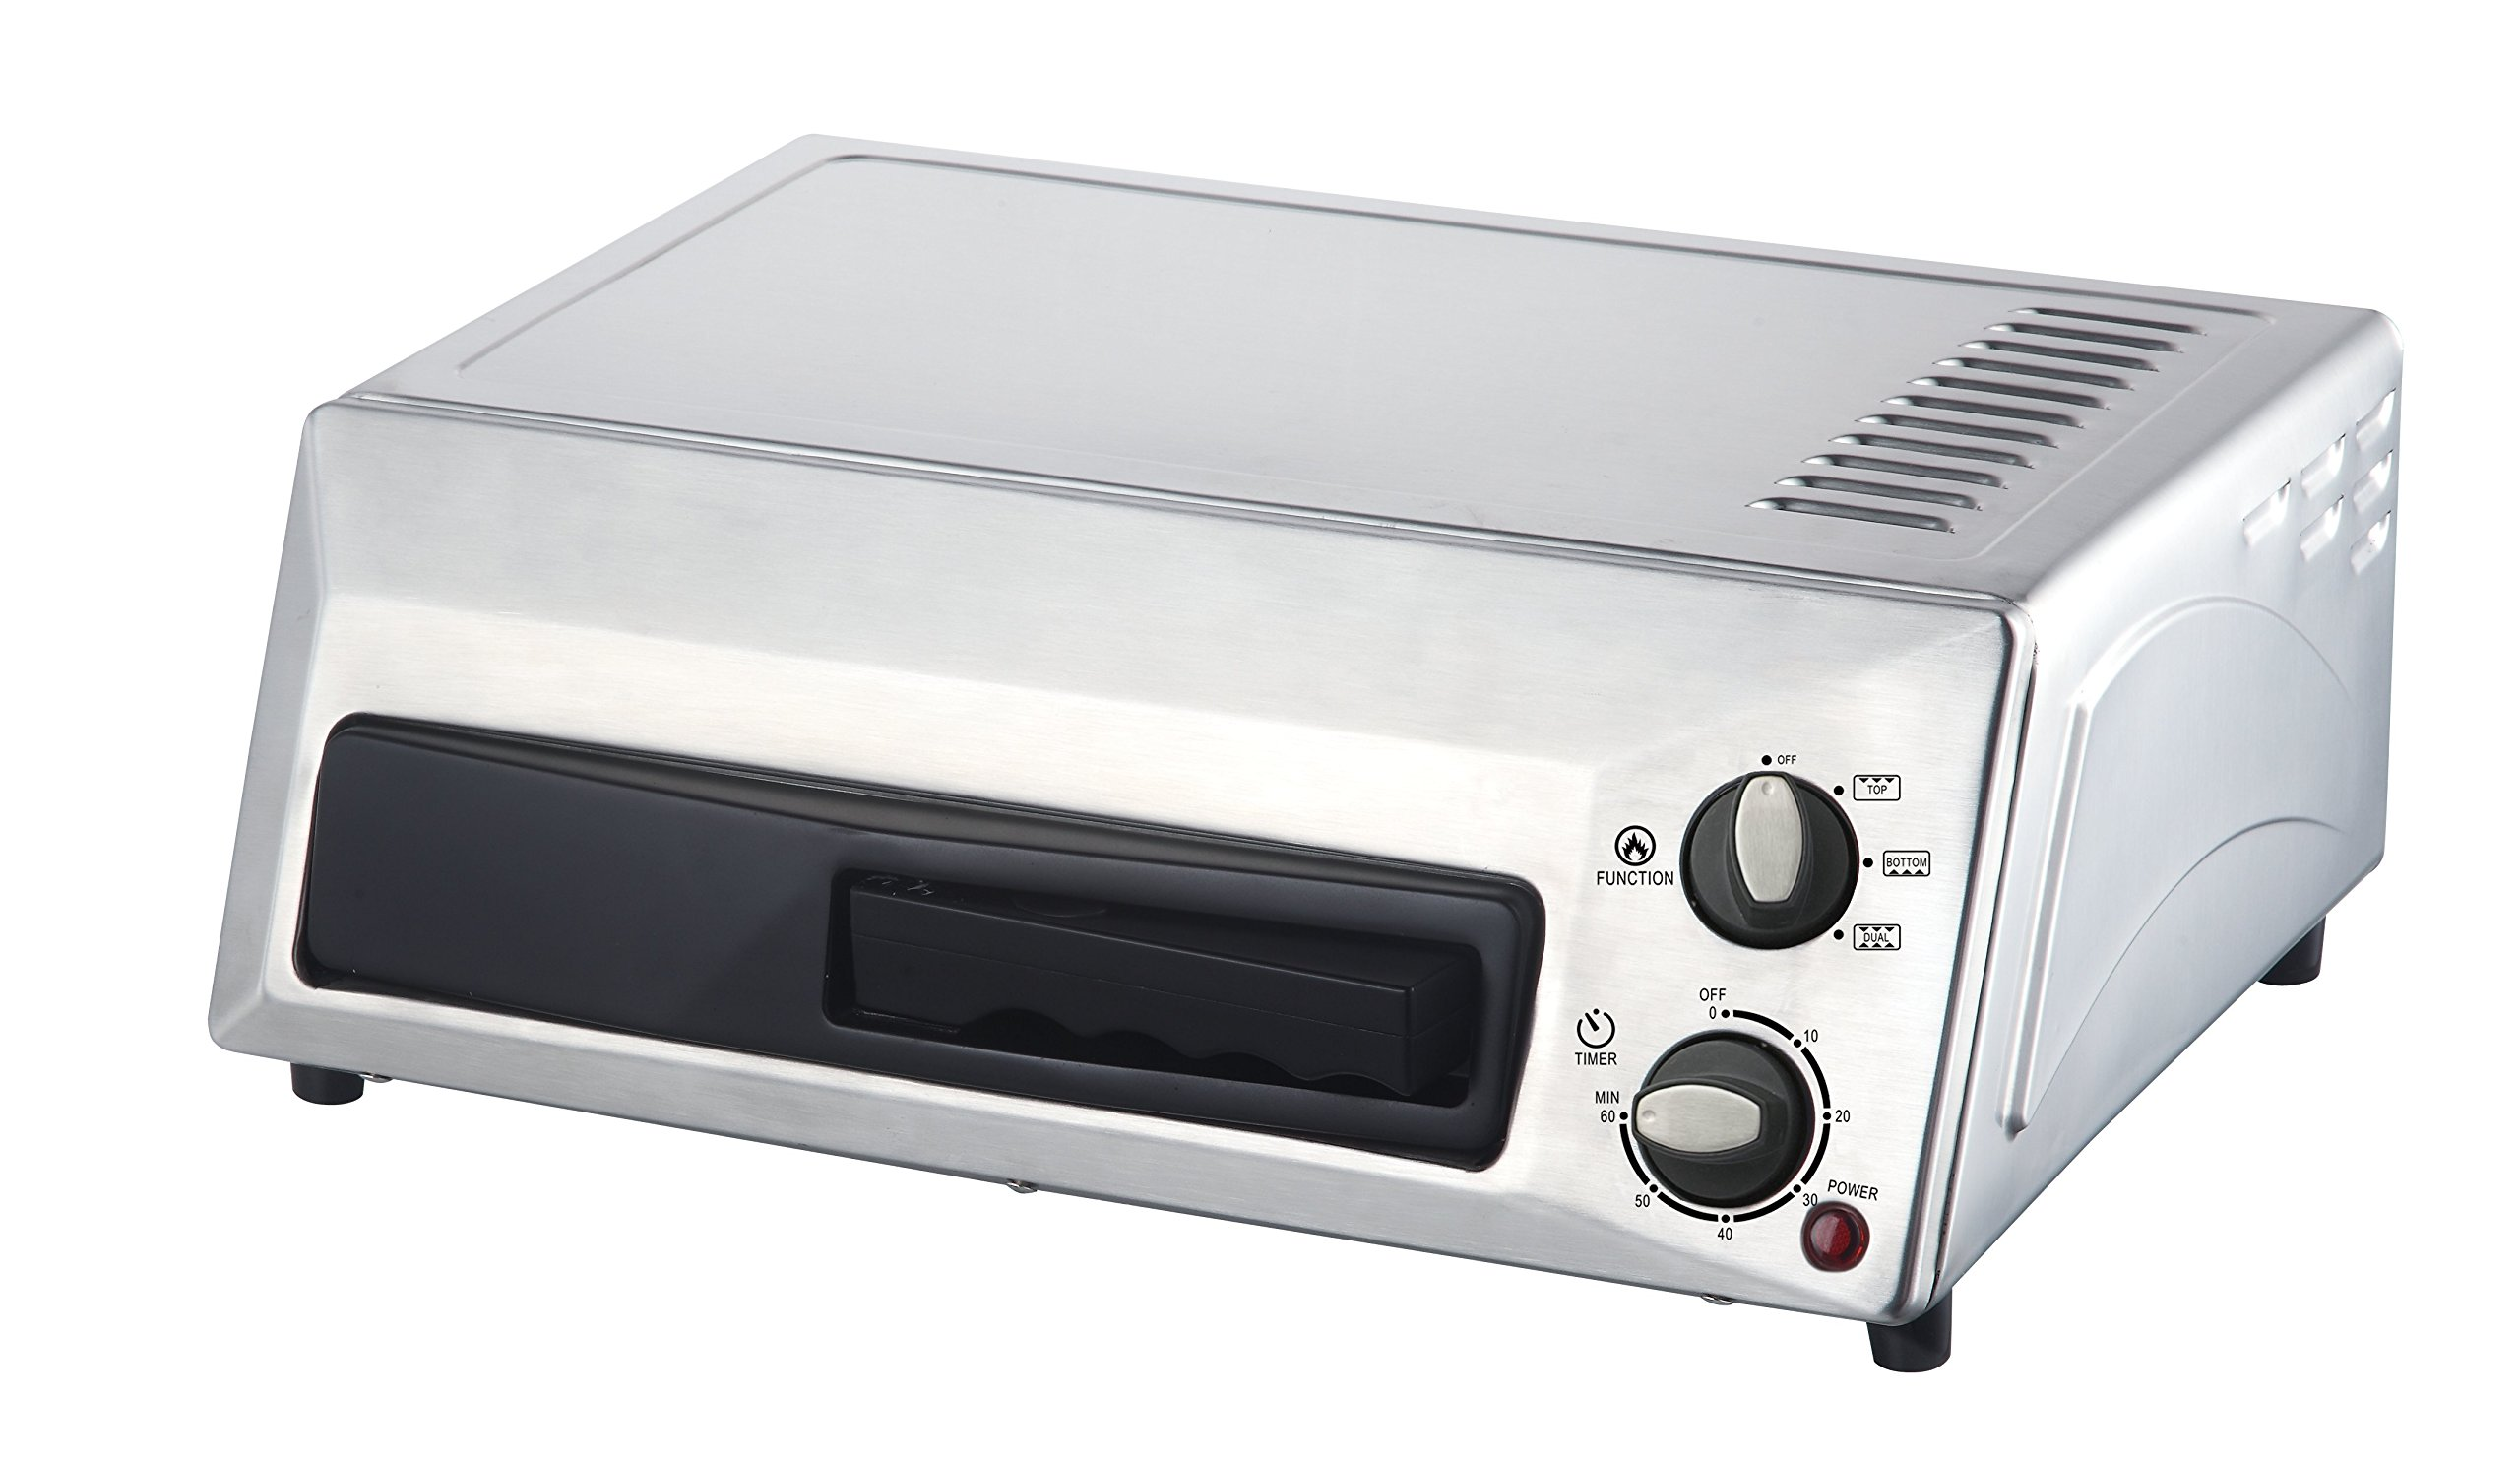 Magic Chef Countertop Stainless Steel Pizza Oven HQPZO13ST, 12 inches by Magic Chef